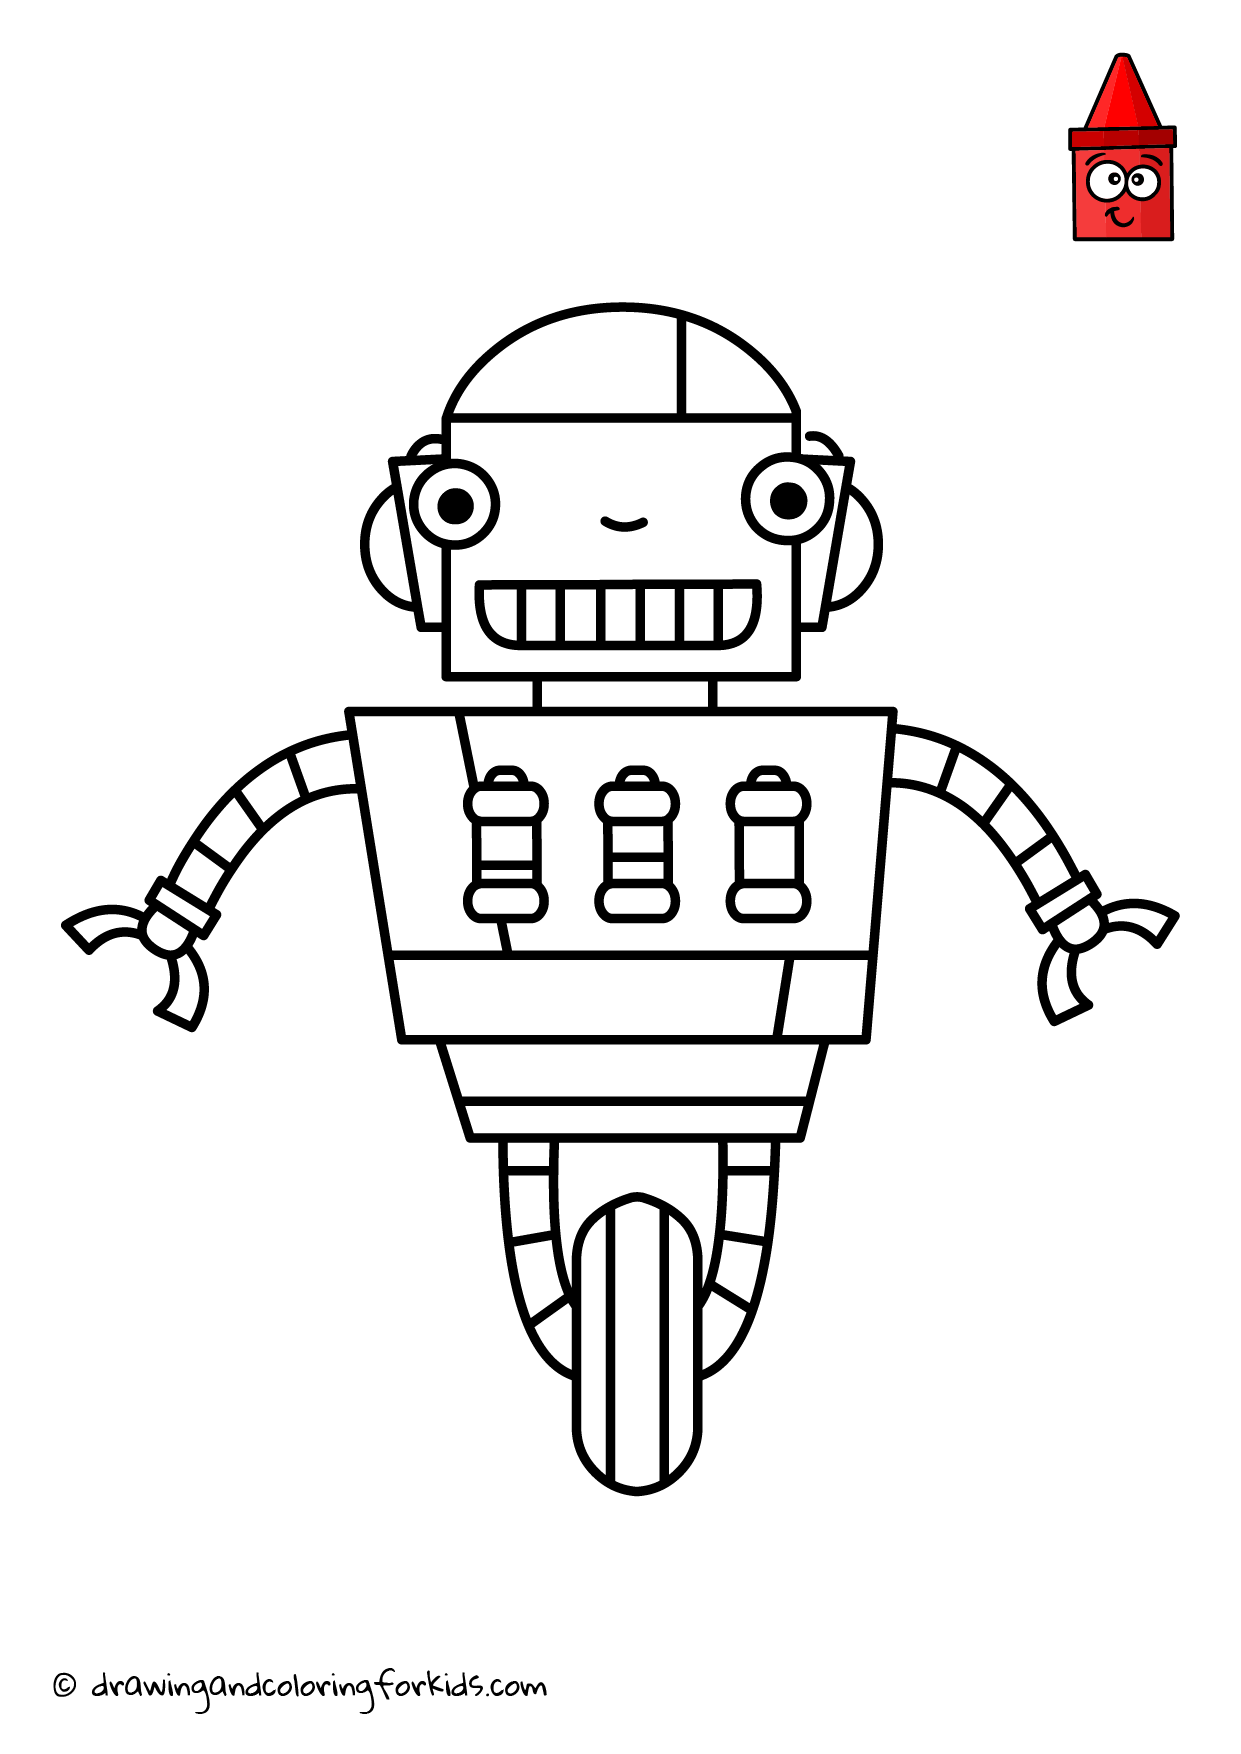 Wonderful Robot Coloring Page | Draw Robot Easy | Drawing Robots For Kids